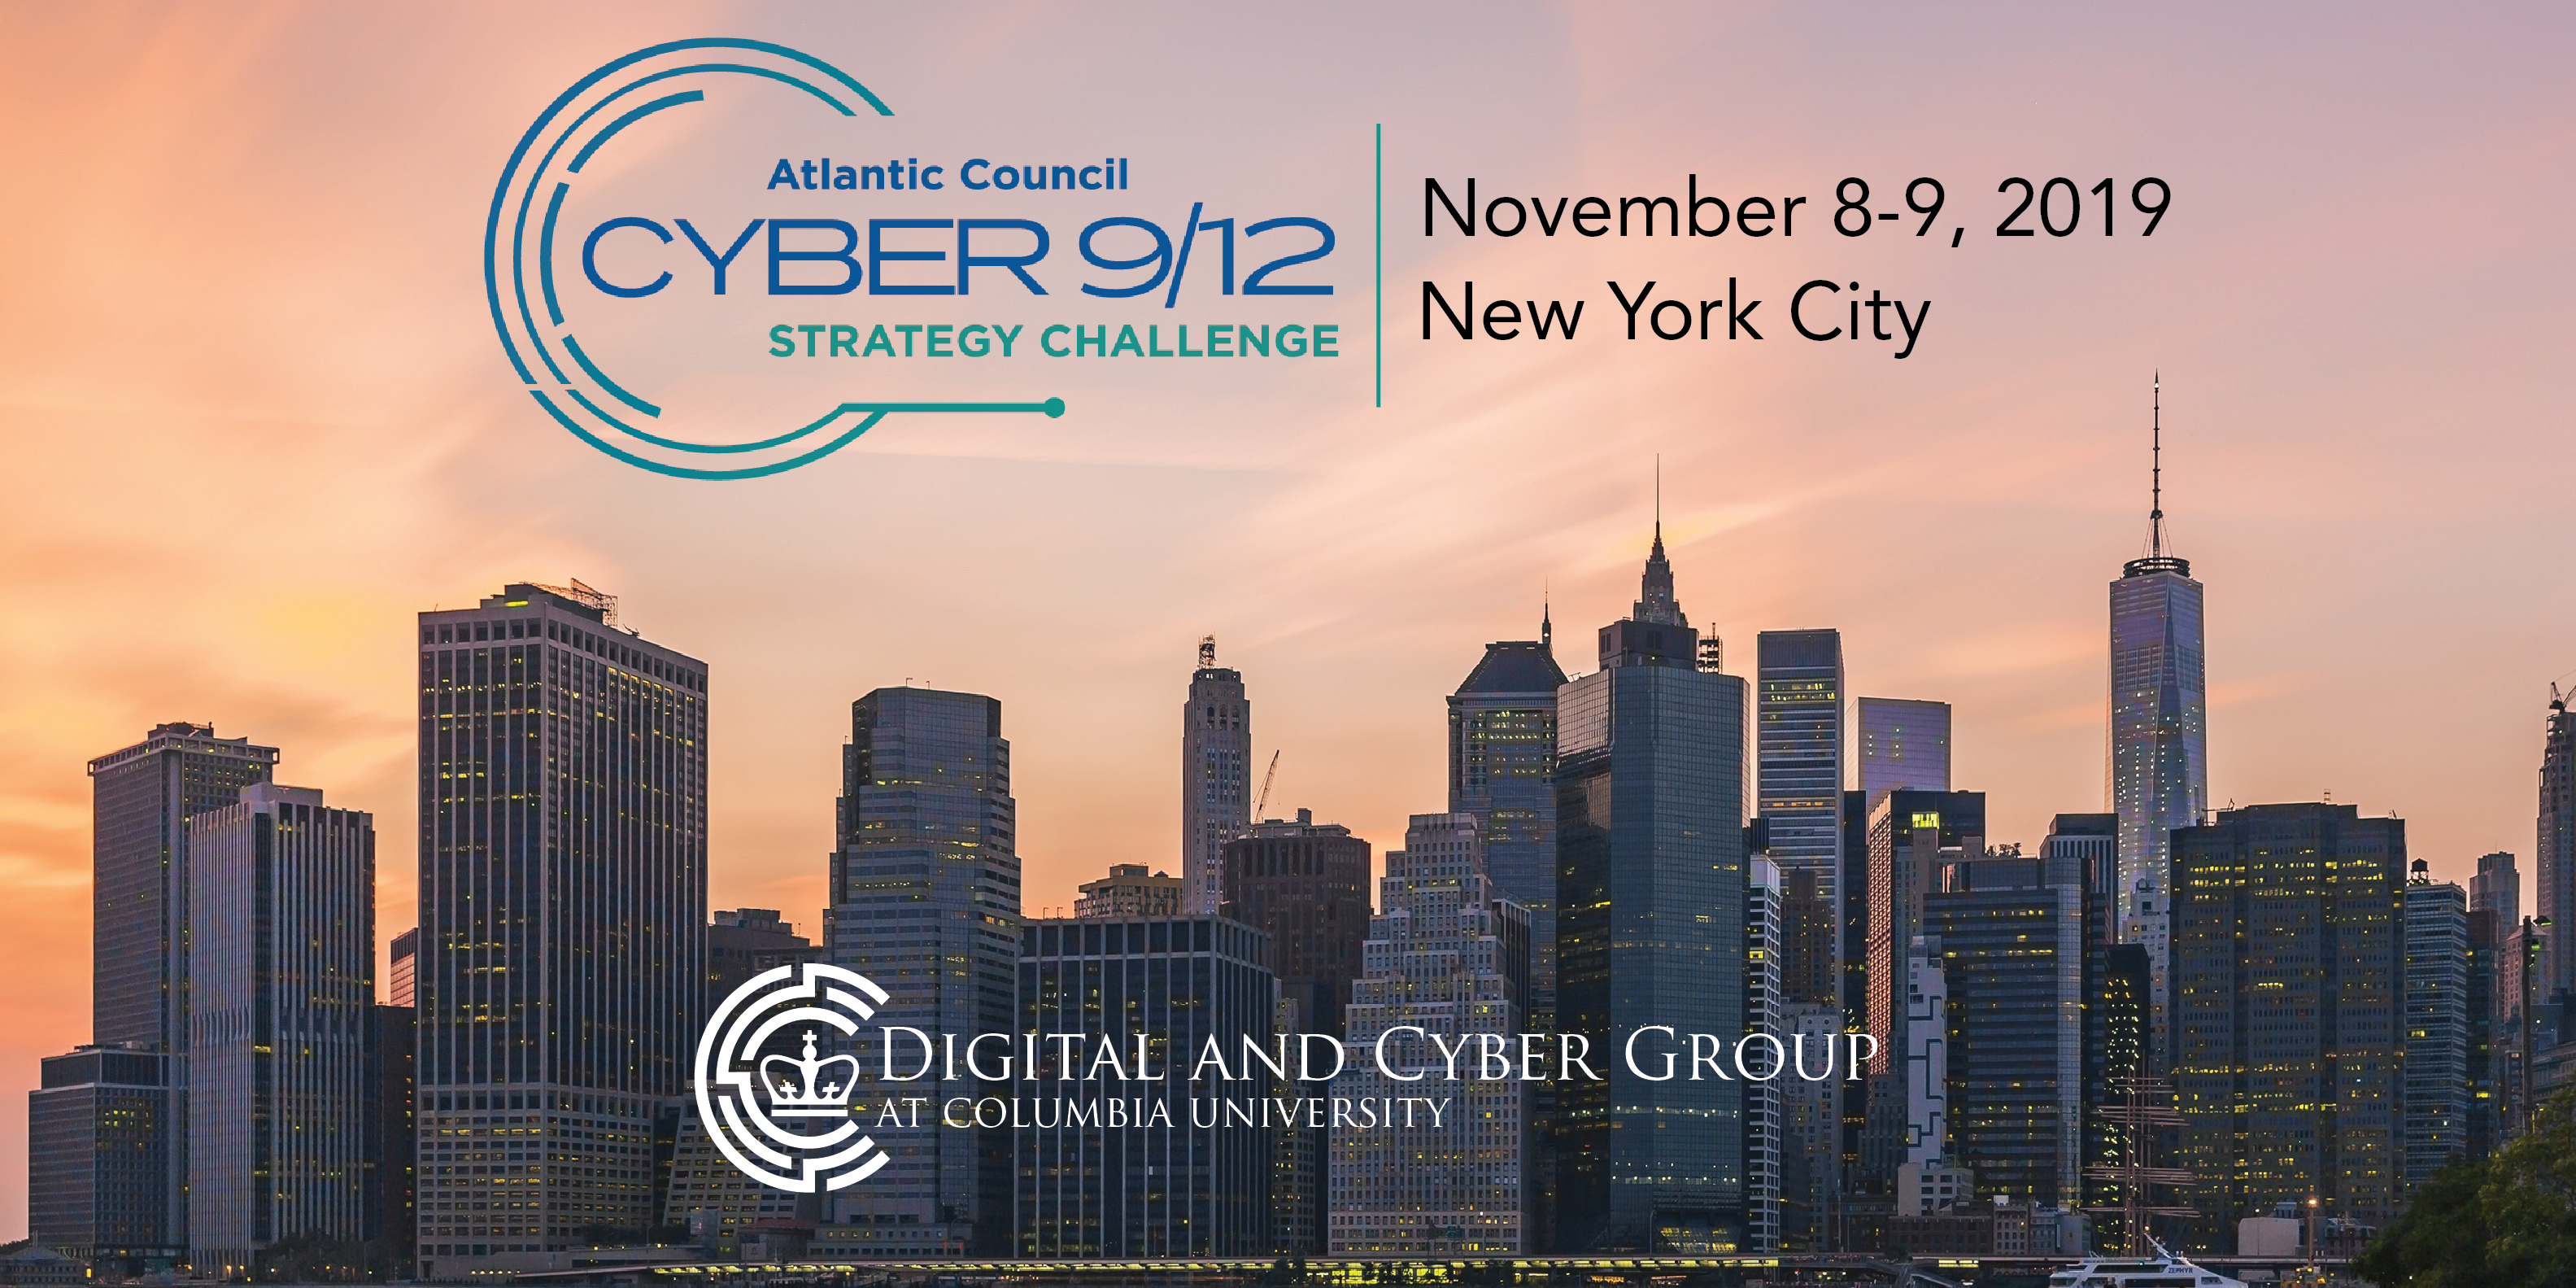 New York Cyber 9/12 Strategy Competition